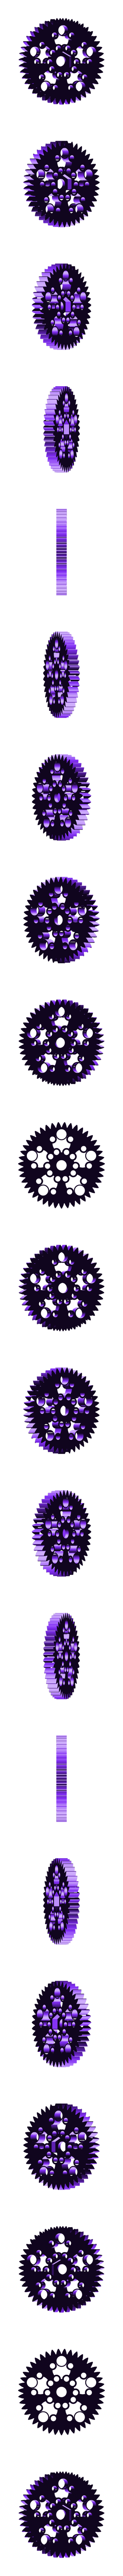 Geared_Extrude_big_gear_with_patern.stl Download free STL file FDM Printer de Kleine Reus 300x300x900 • 3D printable object, Job